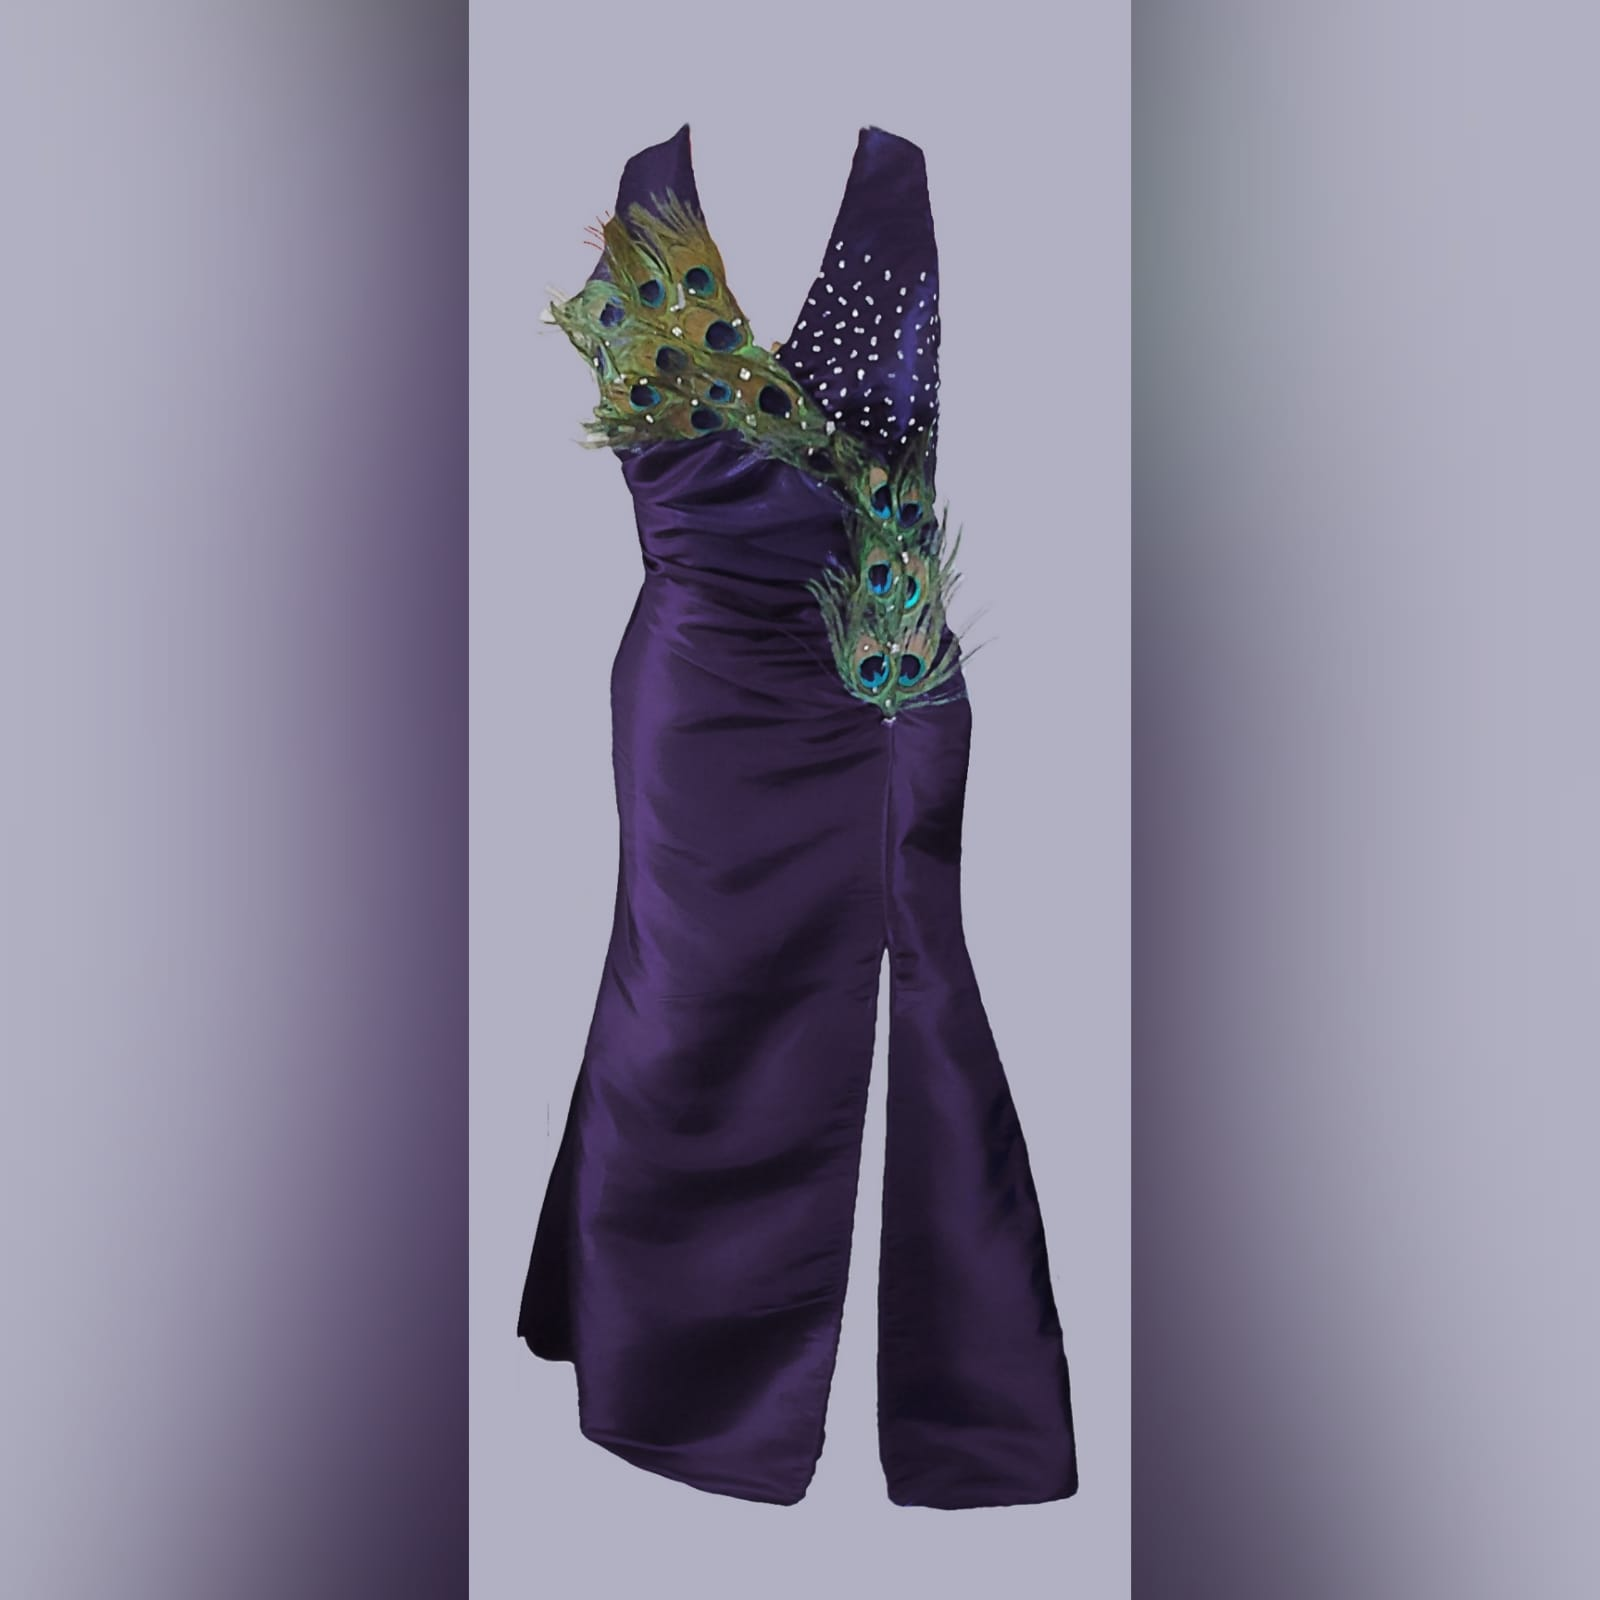 Purple peacock prom dance dress 2 purple prom dance dress detailed with peacock feathers and silver beads, with a slit, halter neck and matching hair accessory.